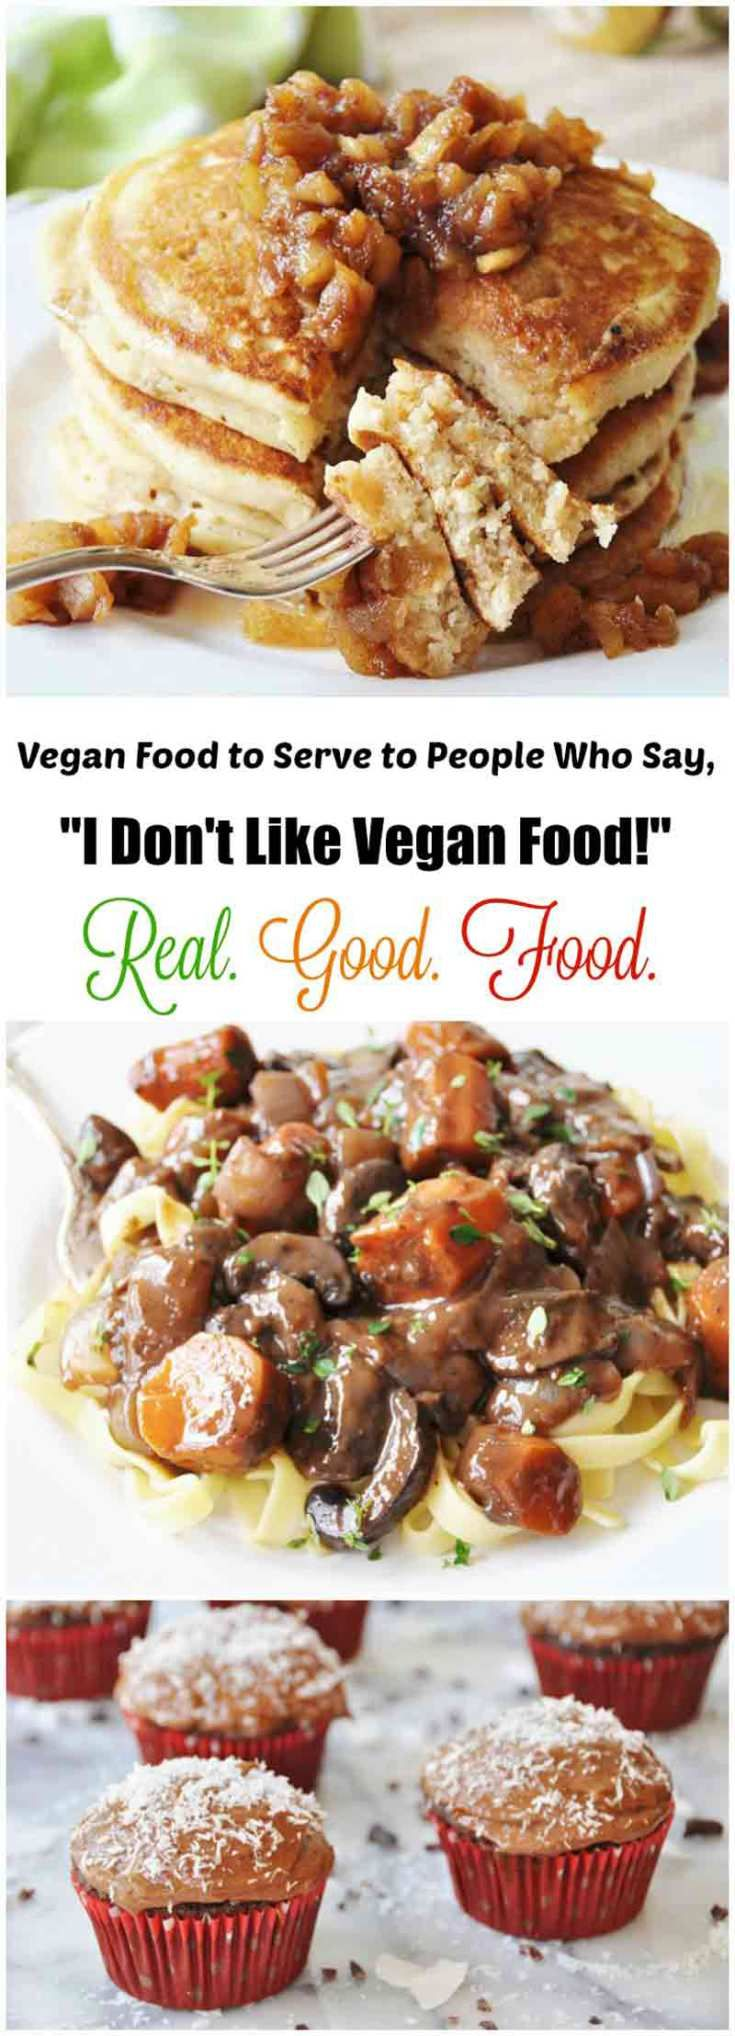 What to serve to vegans who say they don't like vegan food! Vegan food recipes that are real and good. Real good food is never a mystery. www.veganosity.com